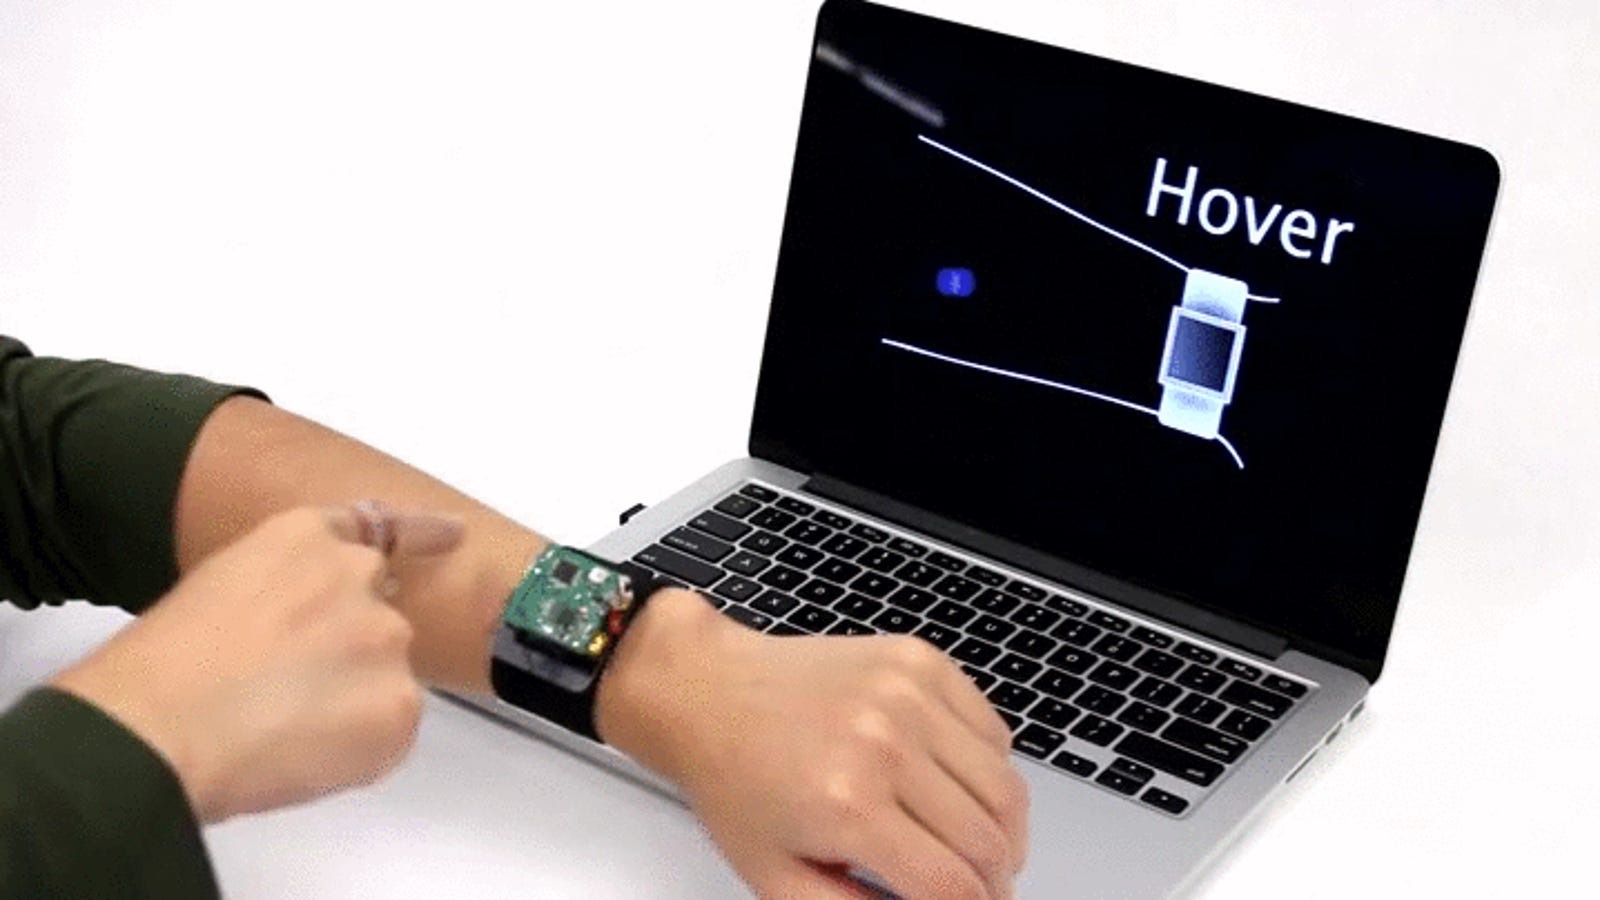 This New 'Skinterface' Could Make Smartwatches Suck Less